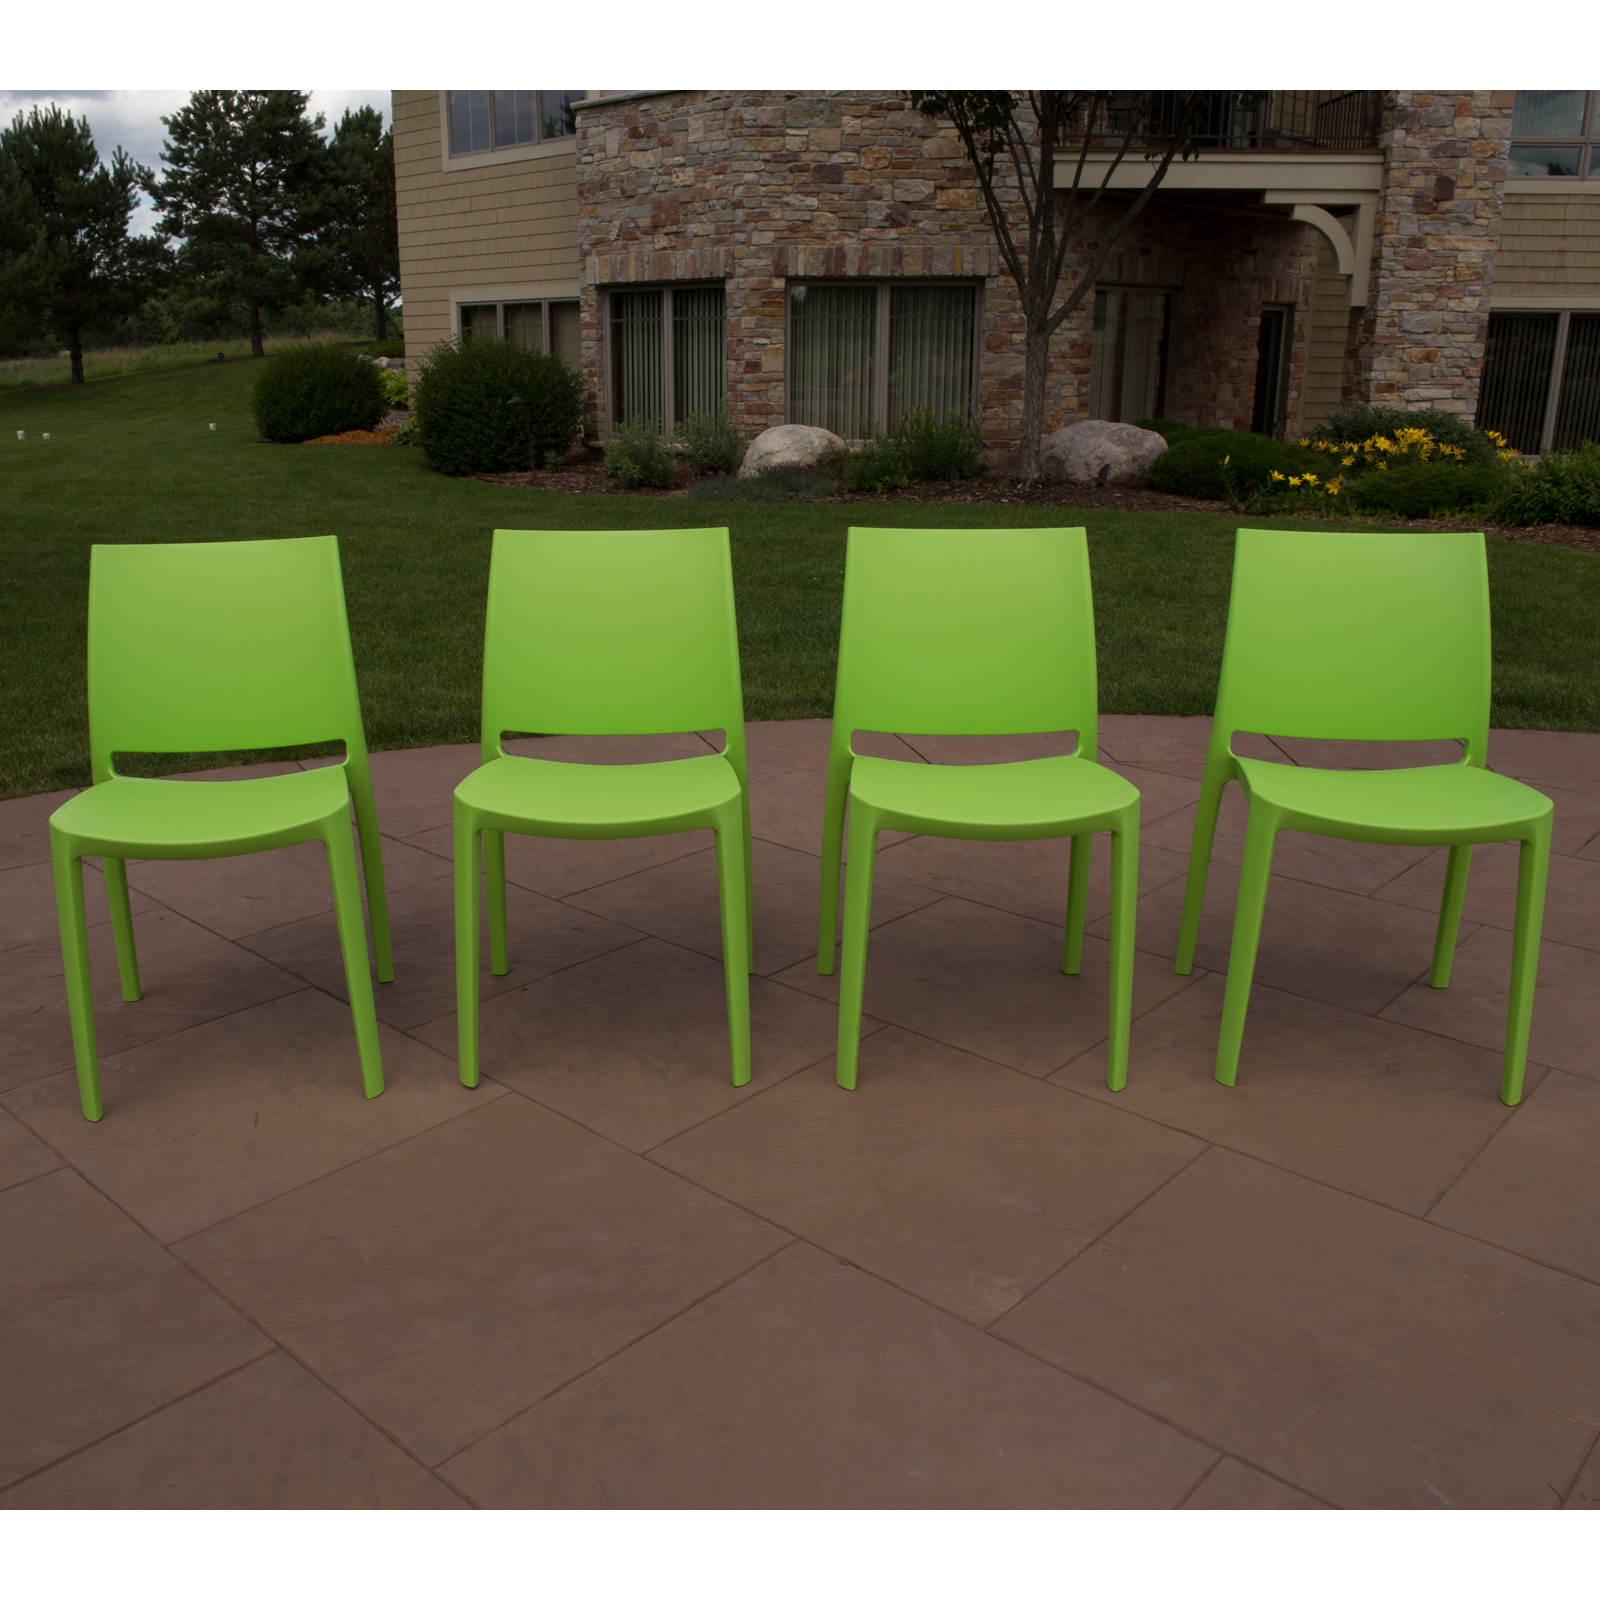 Strata Furniture Sensilla All Season Resin Patio Dining Chair   Set Of 4